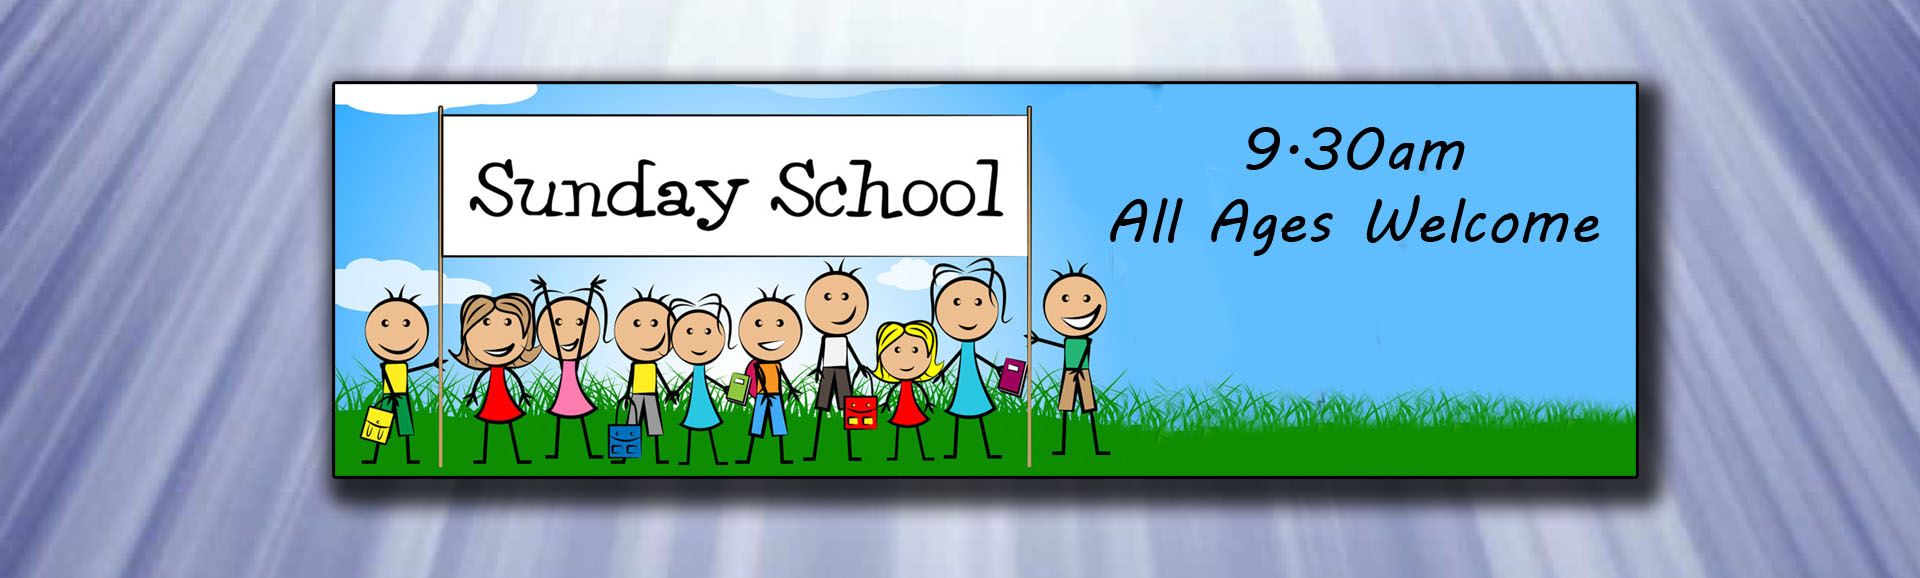 Trinity Lutheran Church Circleville OH 43113. Sunday School for all ages. Starts at 9.30am every Sunday